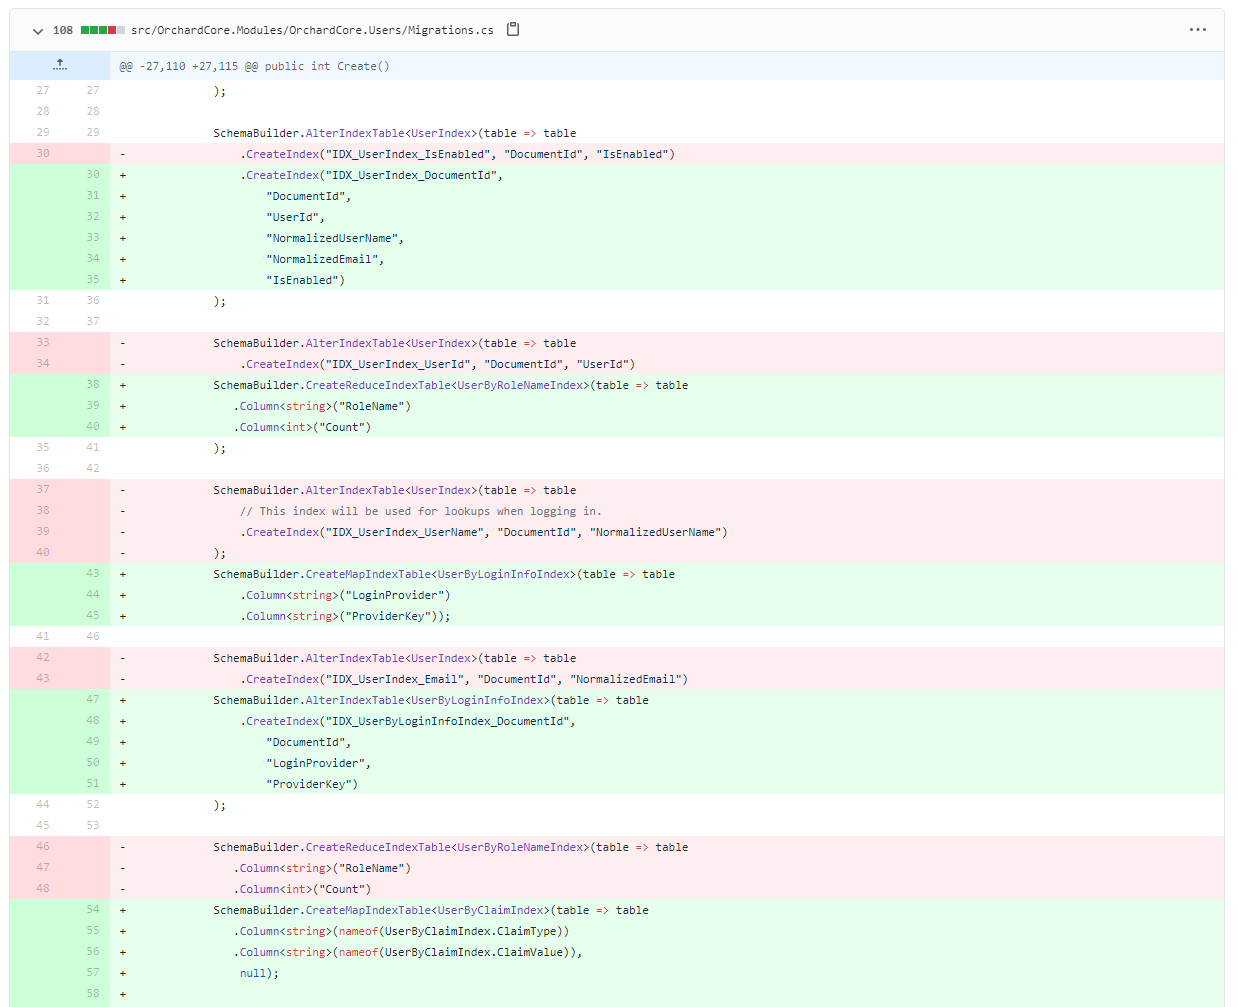 New user-related indexes